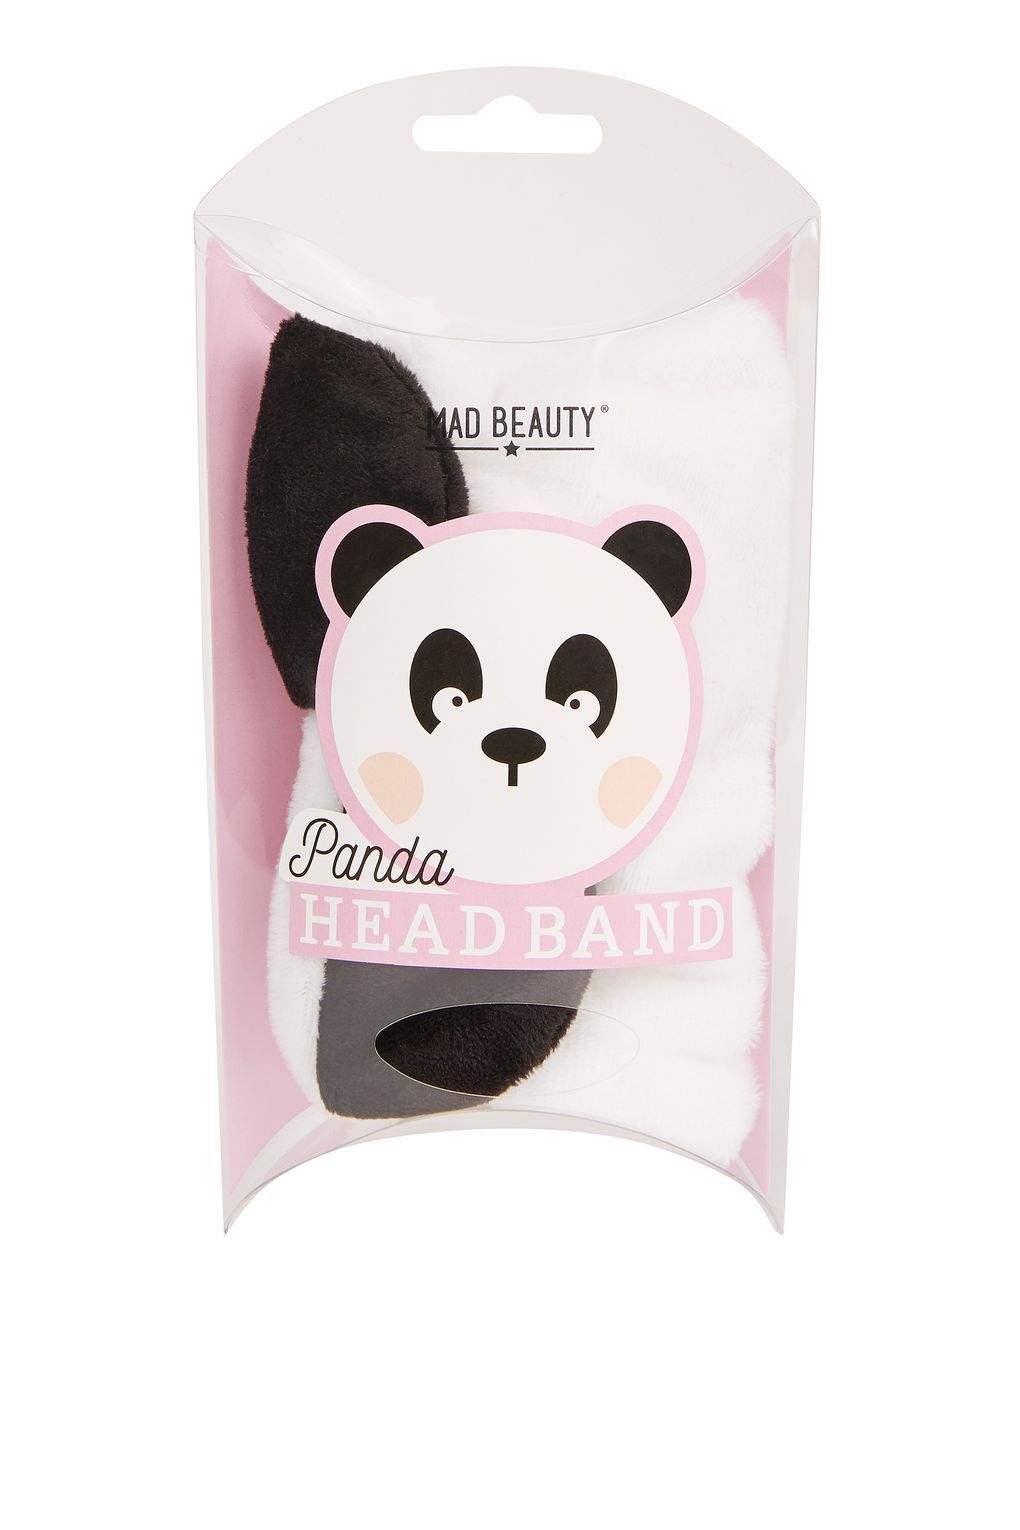 Panda Head Band | Carousel and Head bands